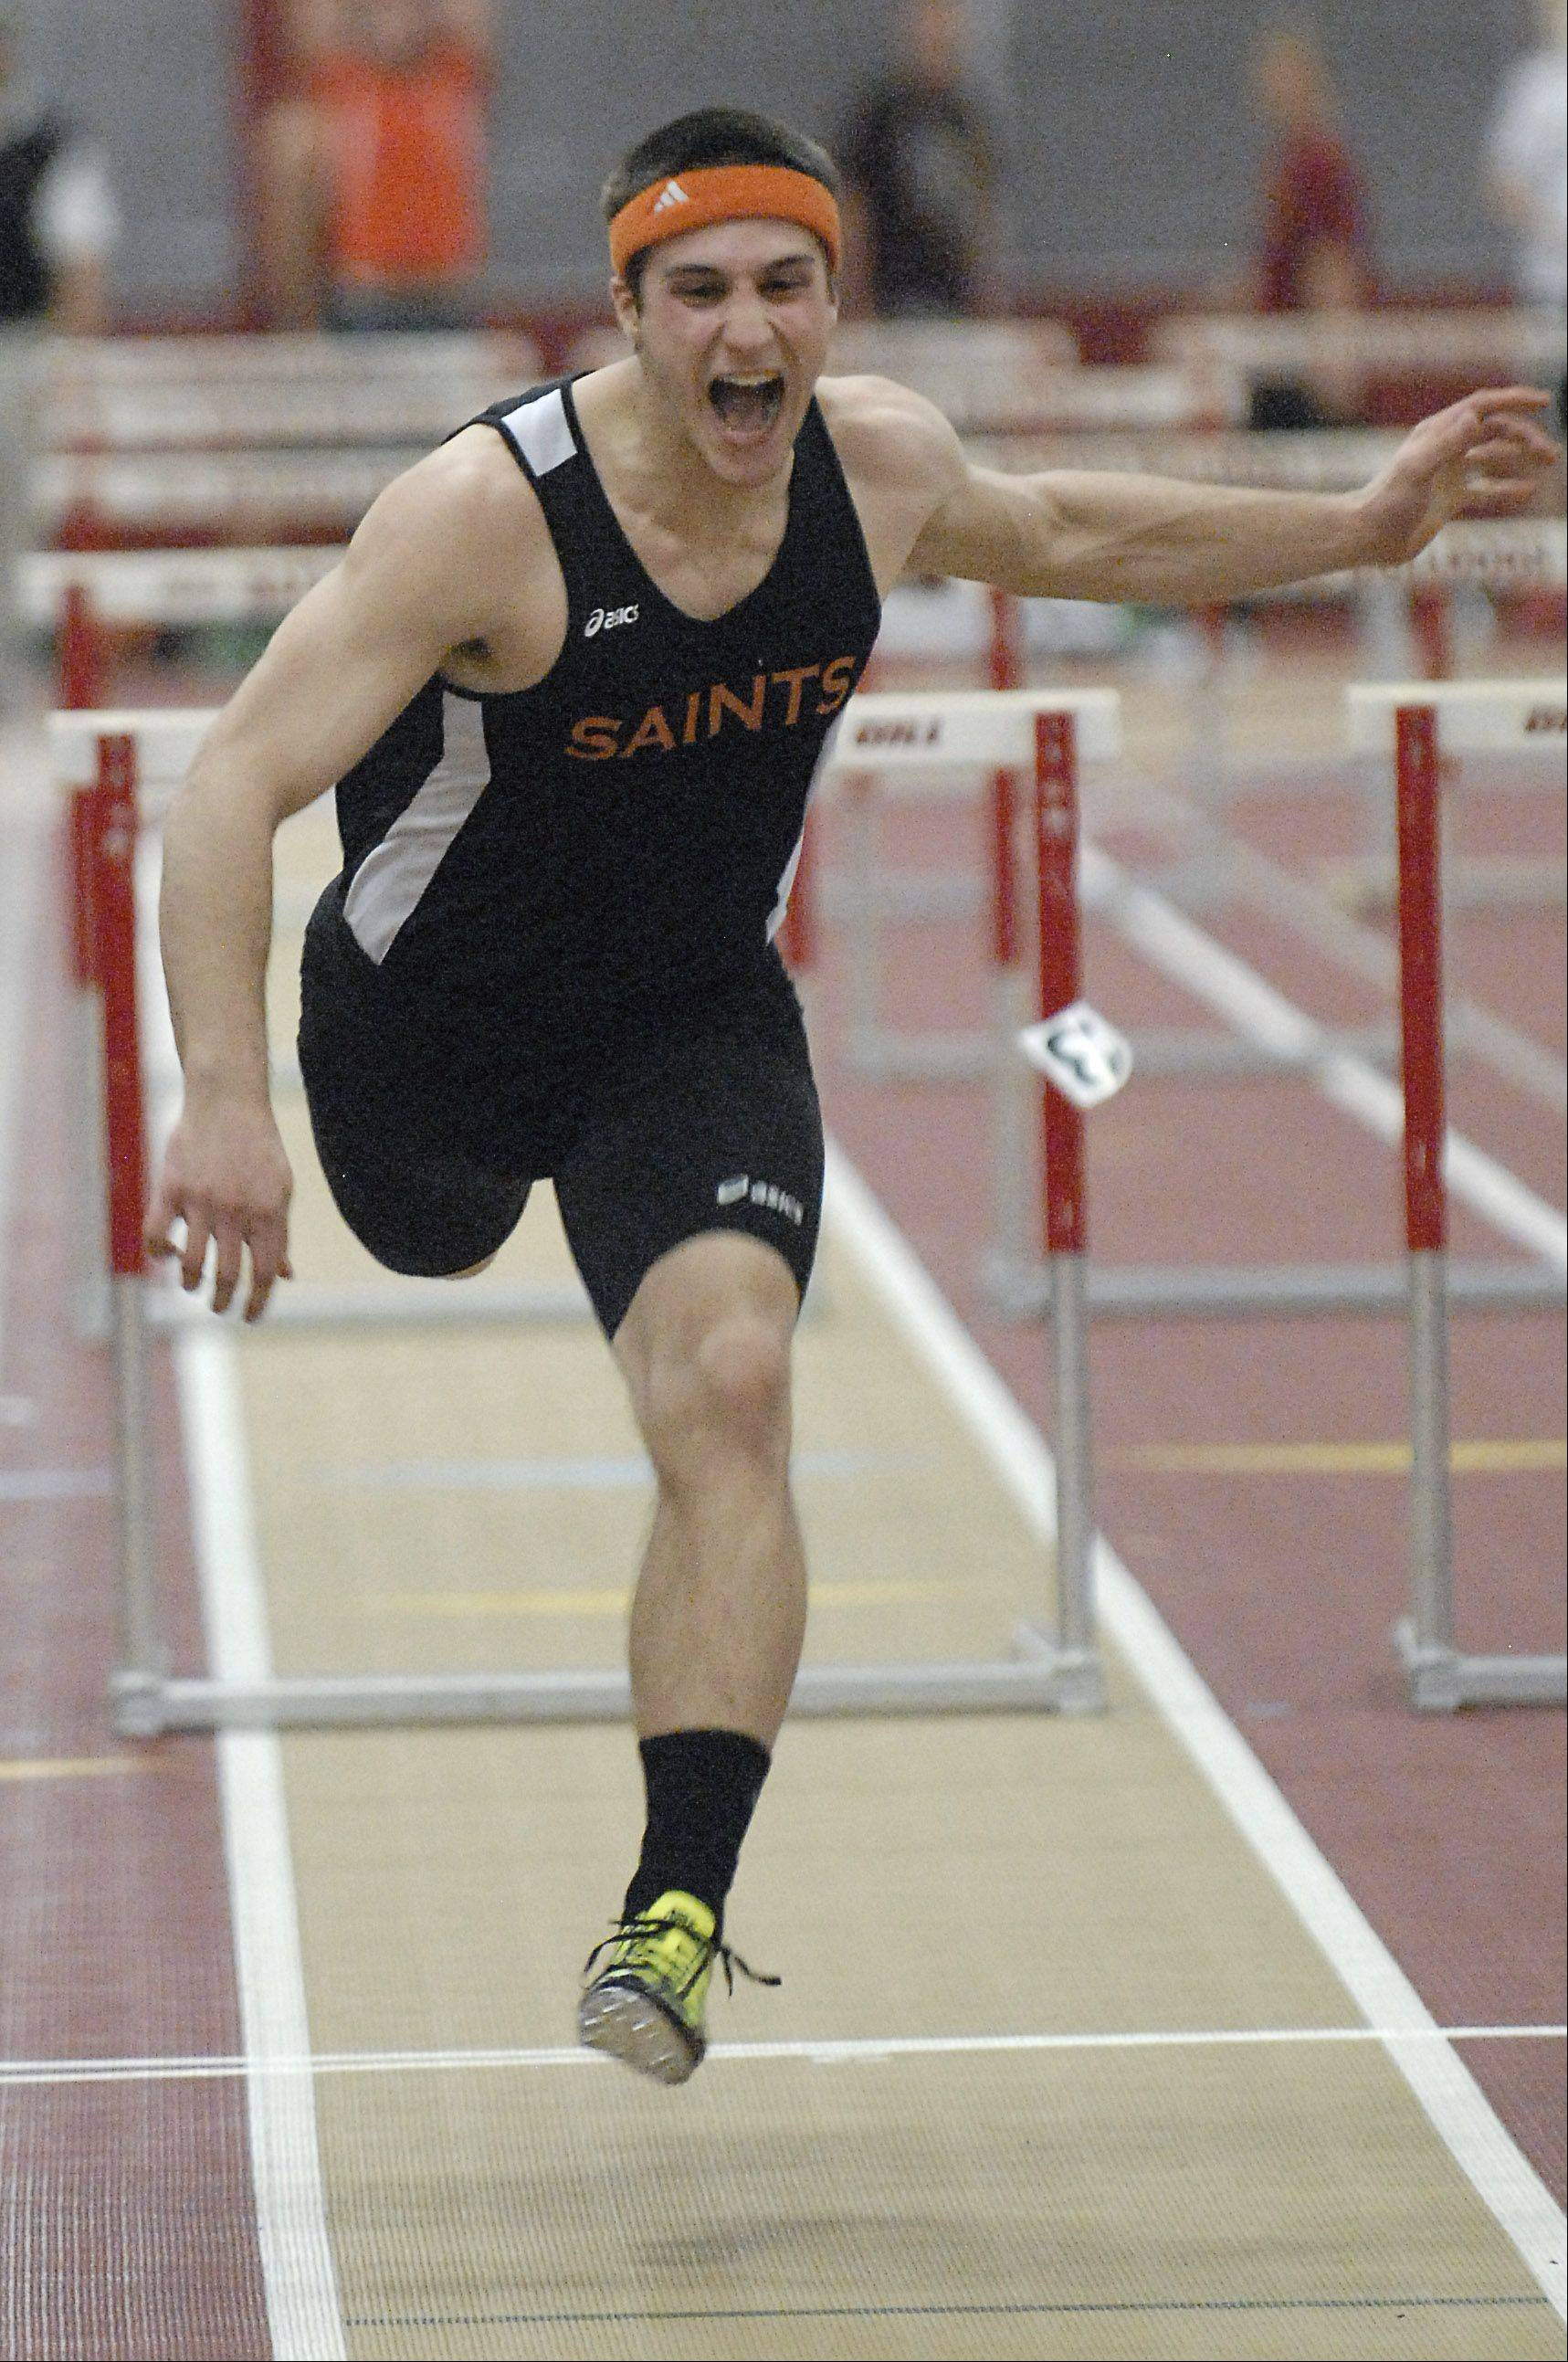 St. Charles East's Nick Devor screams to the finish line in the 55-meter dash final at the Upstate Eight meet in Batavia on Friday.